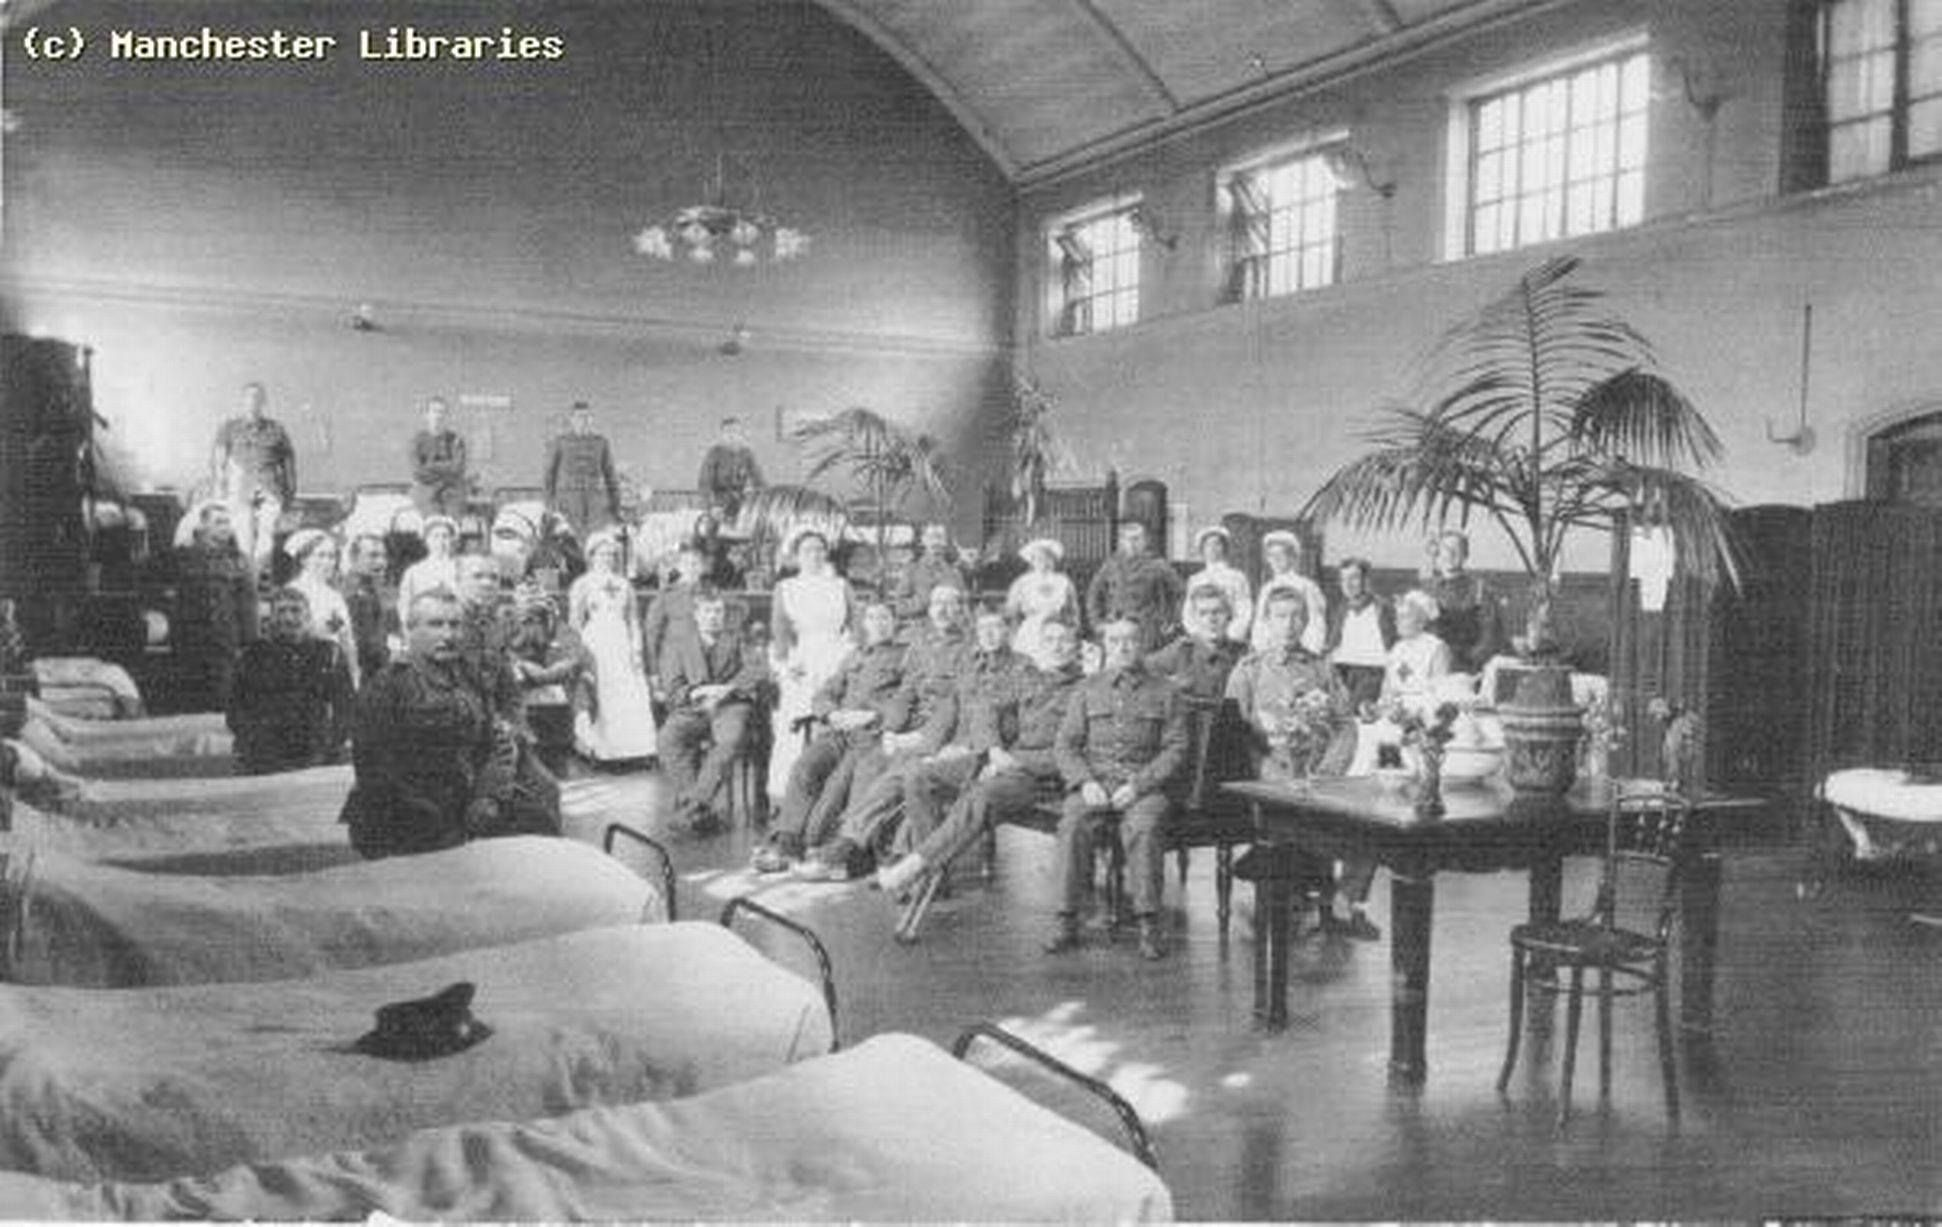 1st world war soldiers recovering in blackley institute